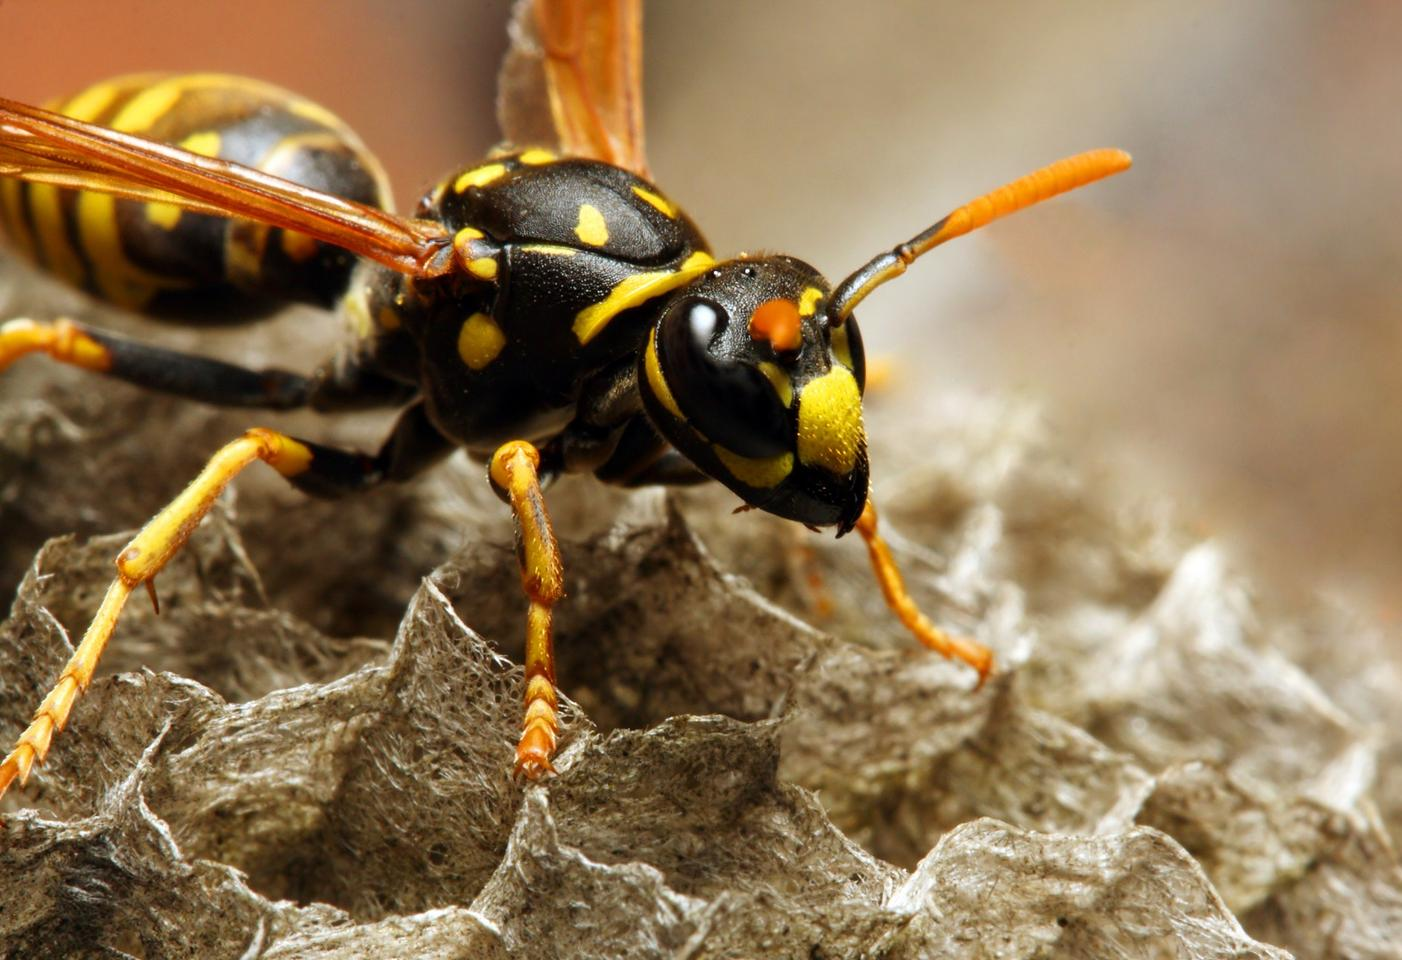 MIT scientists have produced an antibiotic that's derived from wasp venom (although not from the species shown here)